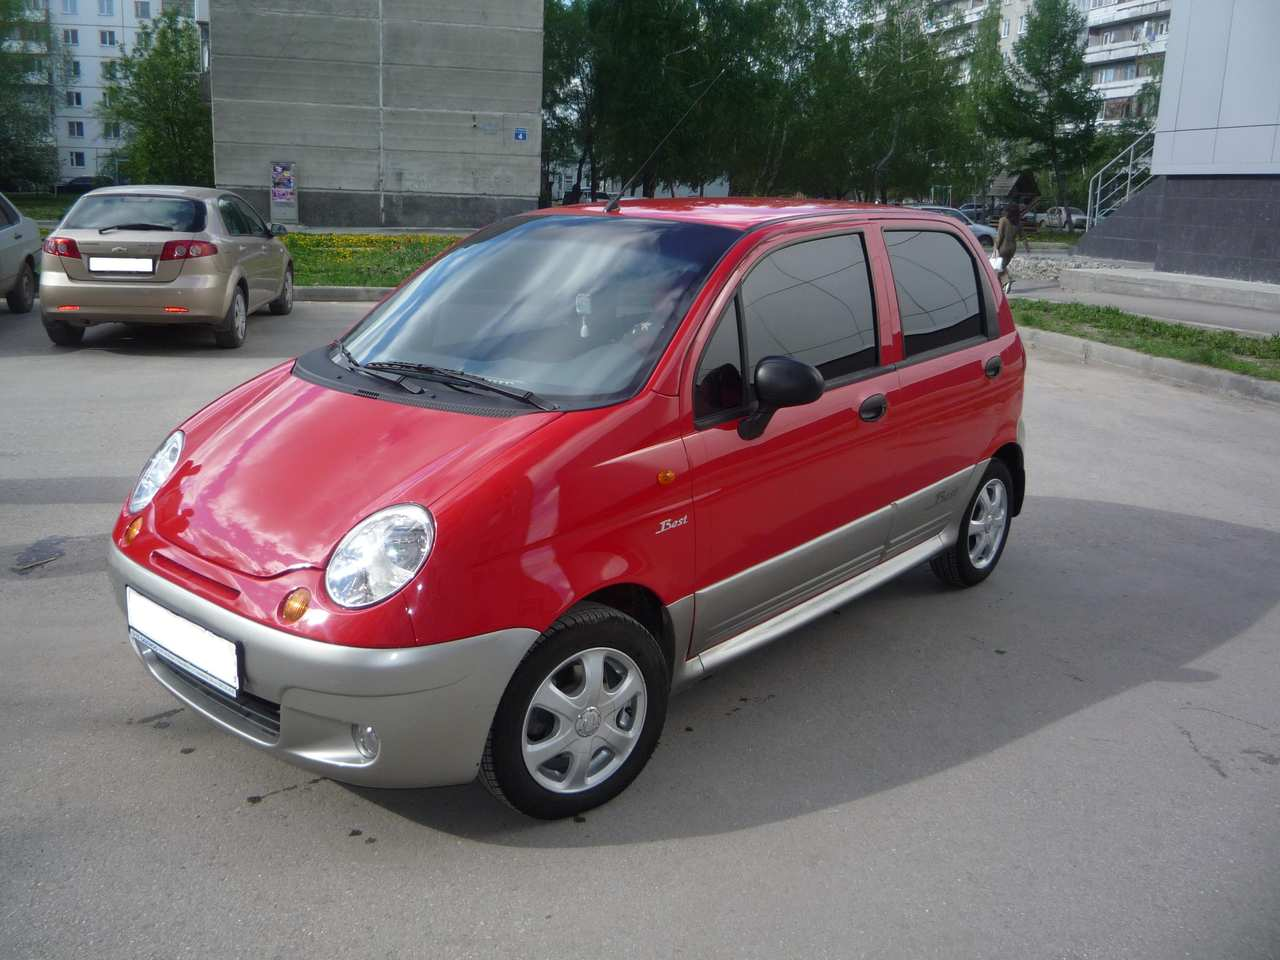 2009 Daewoo Matiz Pictures 10l Gasoline Ff Manual For Sale Chevrolet